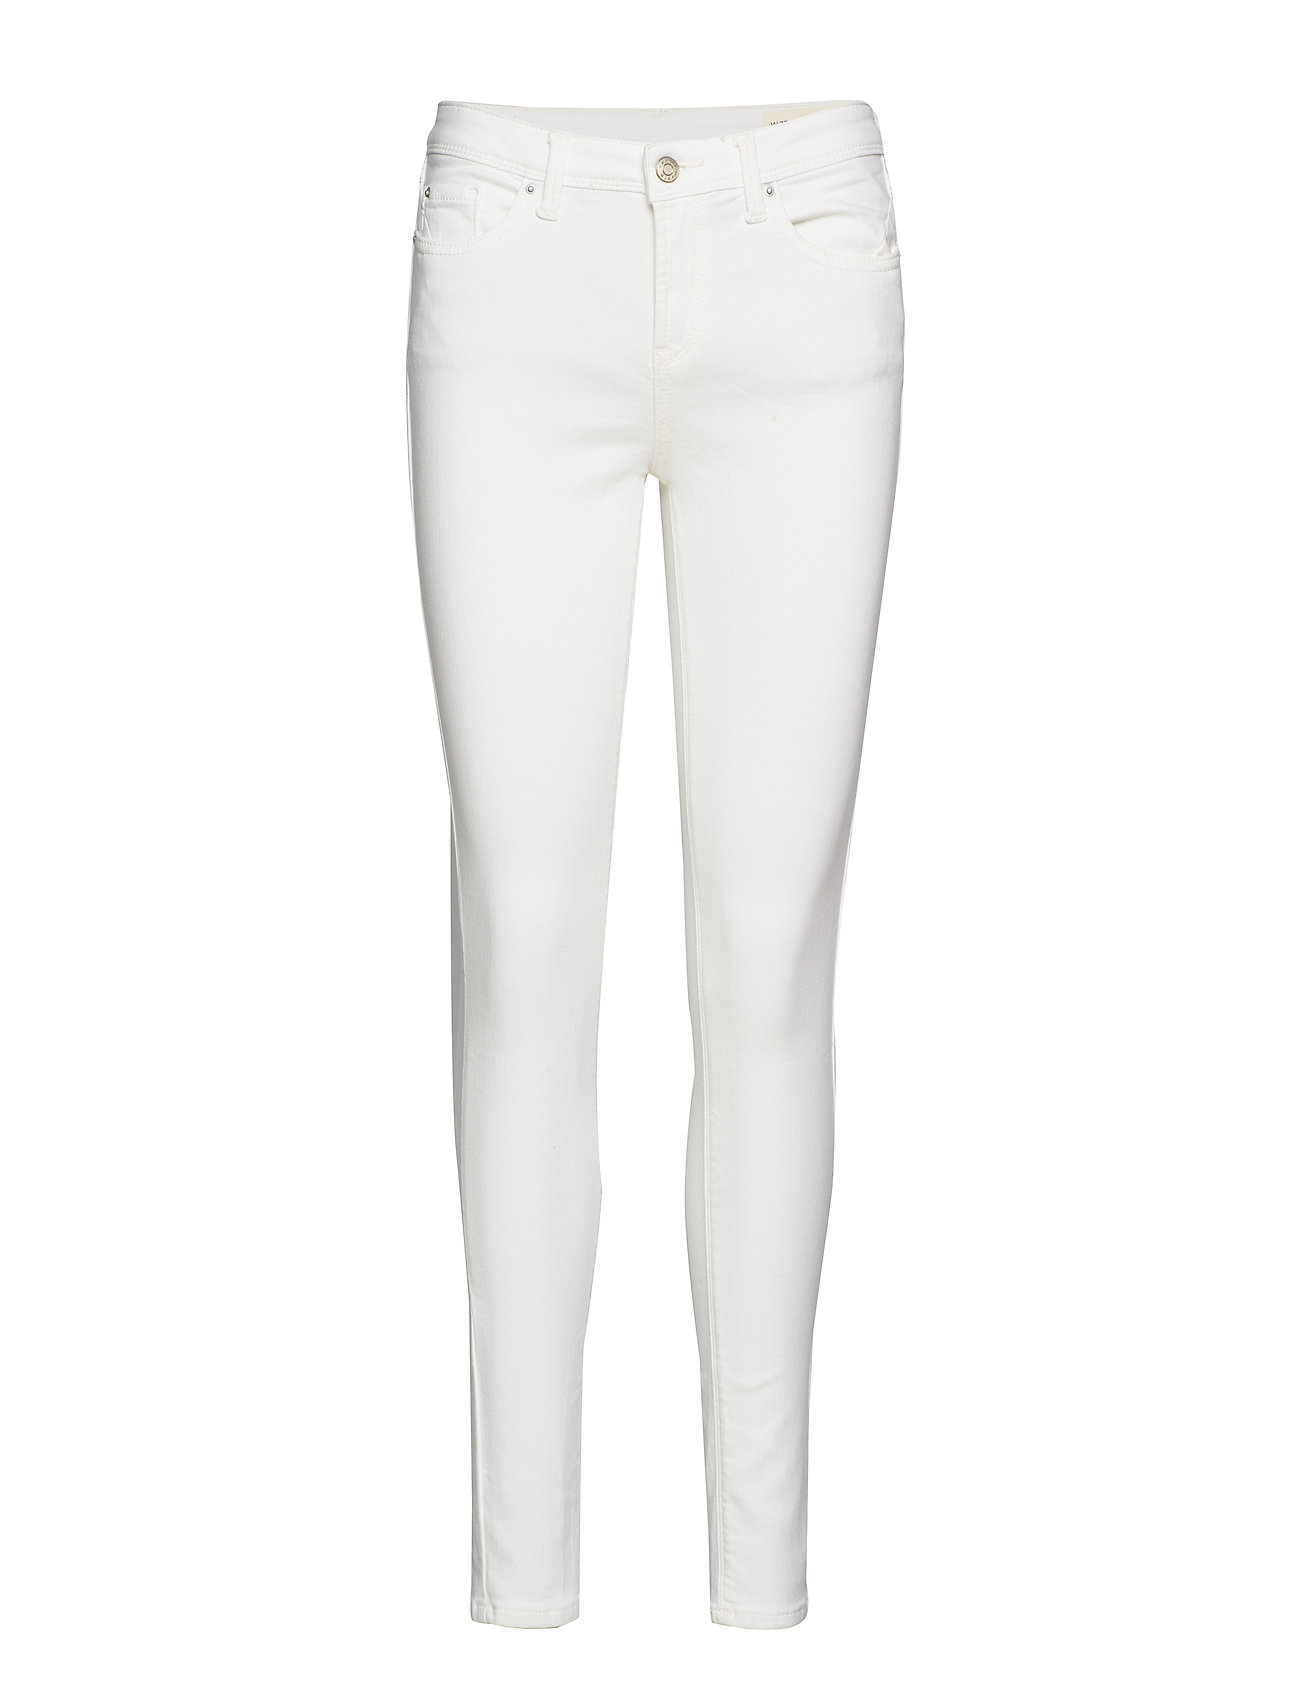 Esprit Casual Pants denim - WHITE